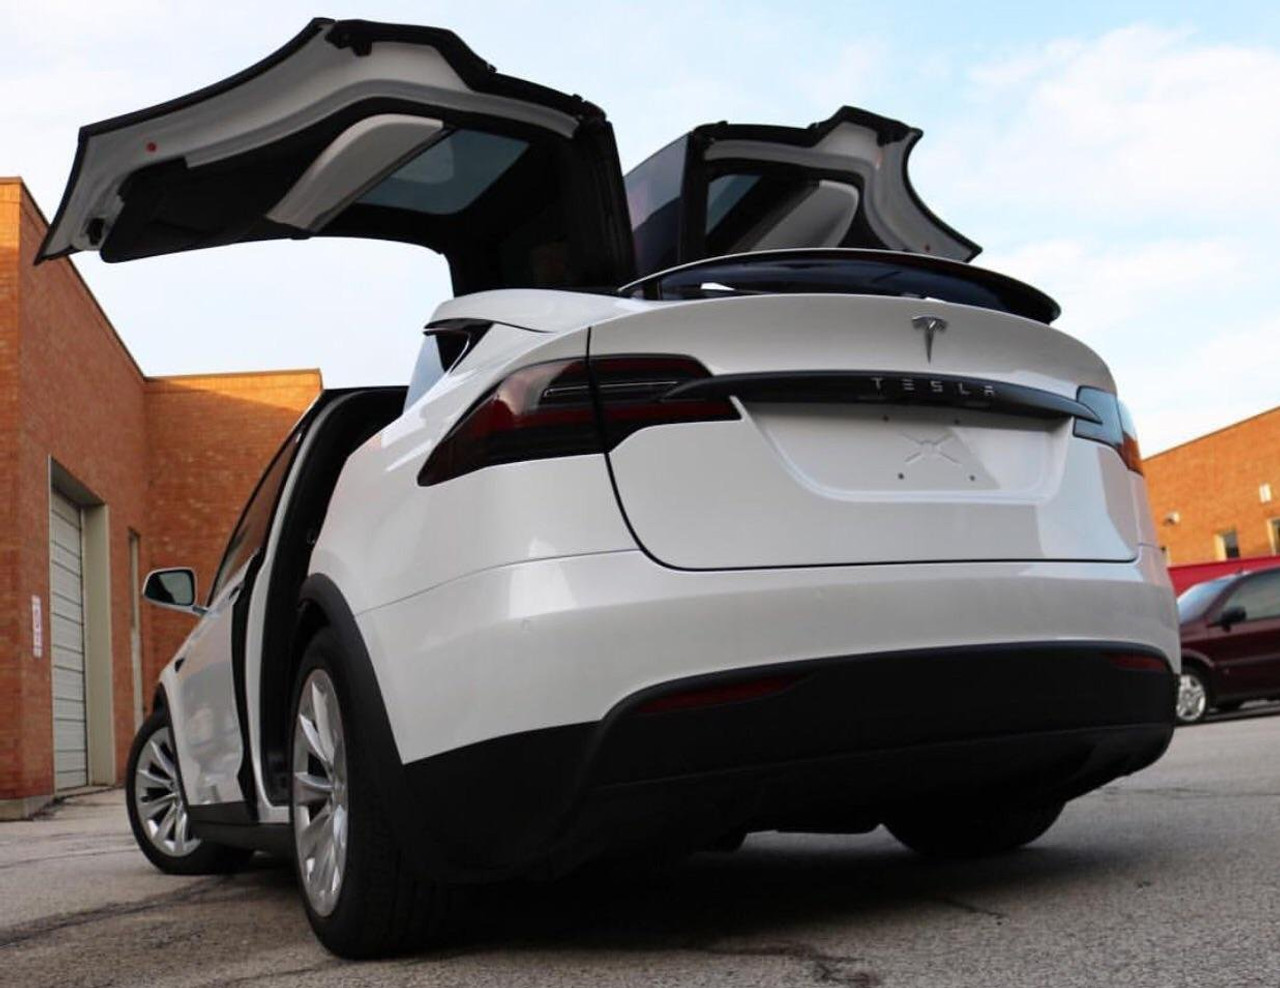 Tesla Model X Smoked Tail Light Overlays Protective Film Covers Kit